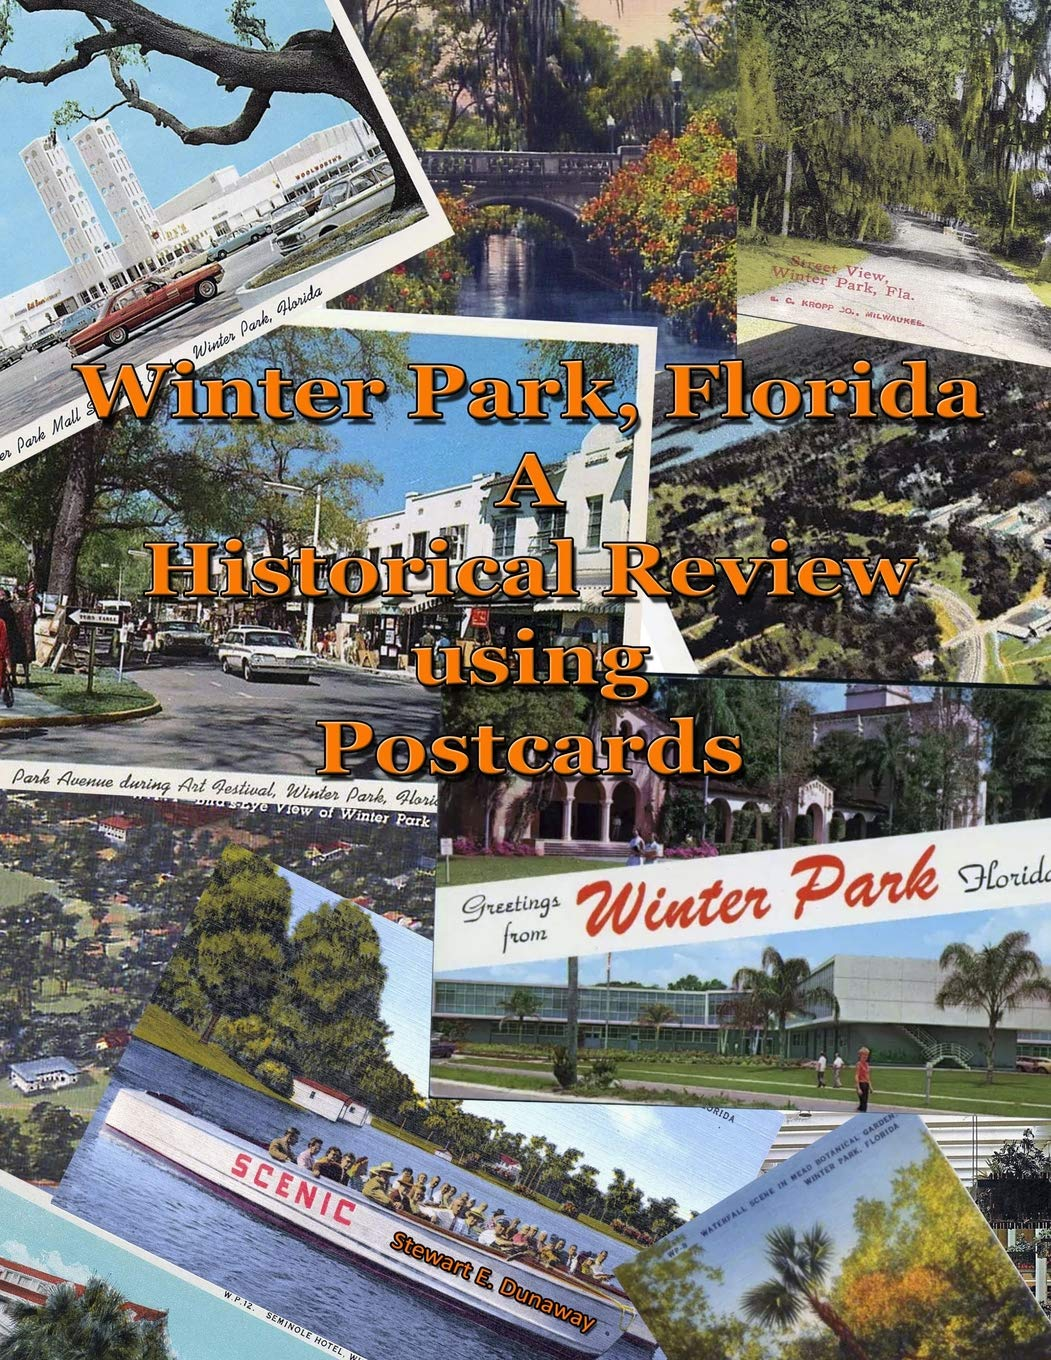 Winter Park, FL - A Historical Review Using Postcards